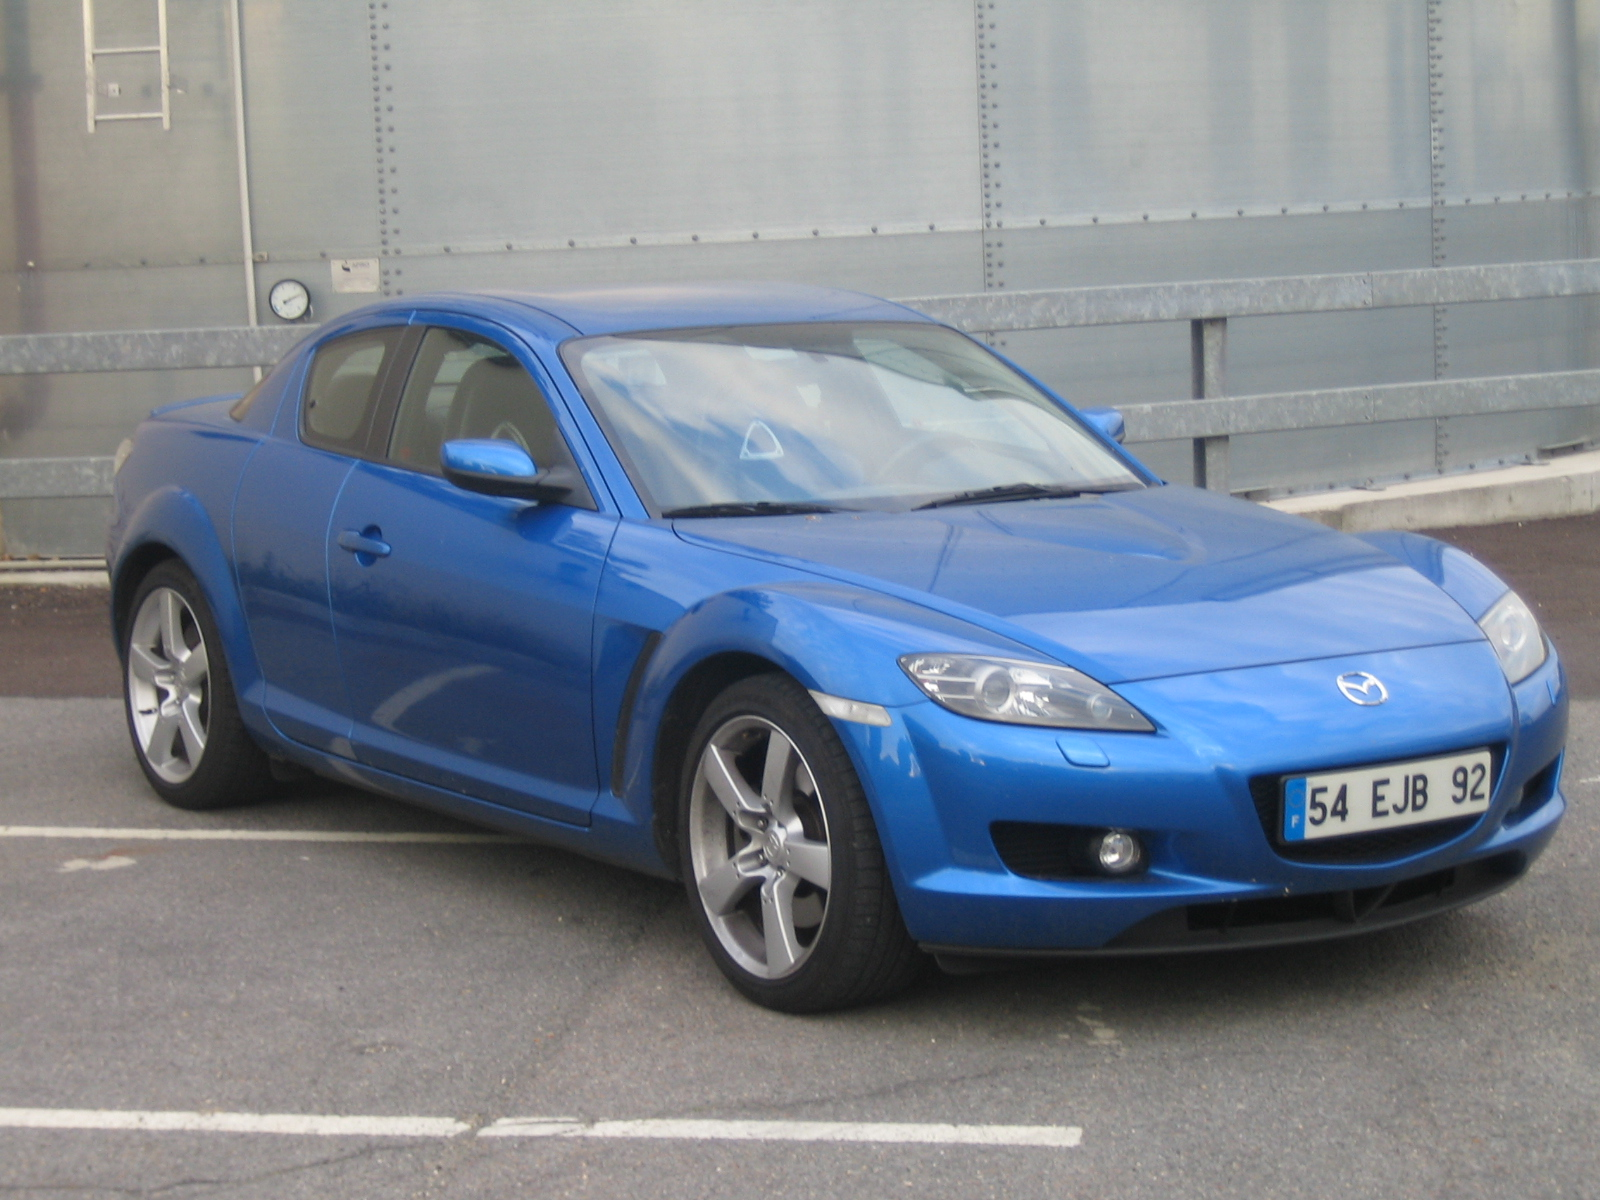 2004 mazda rx 8 grand touring car pictures. Black Bedroom Furniture Sets. Home Design Ideas